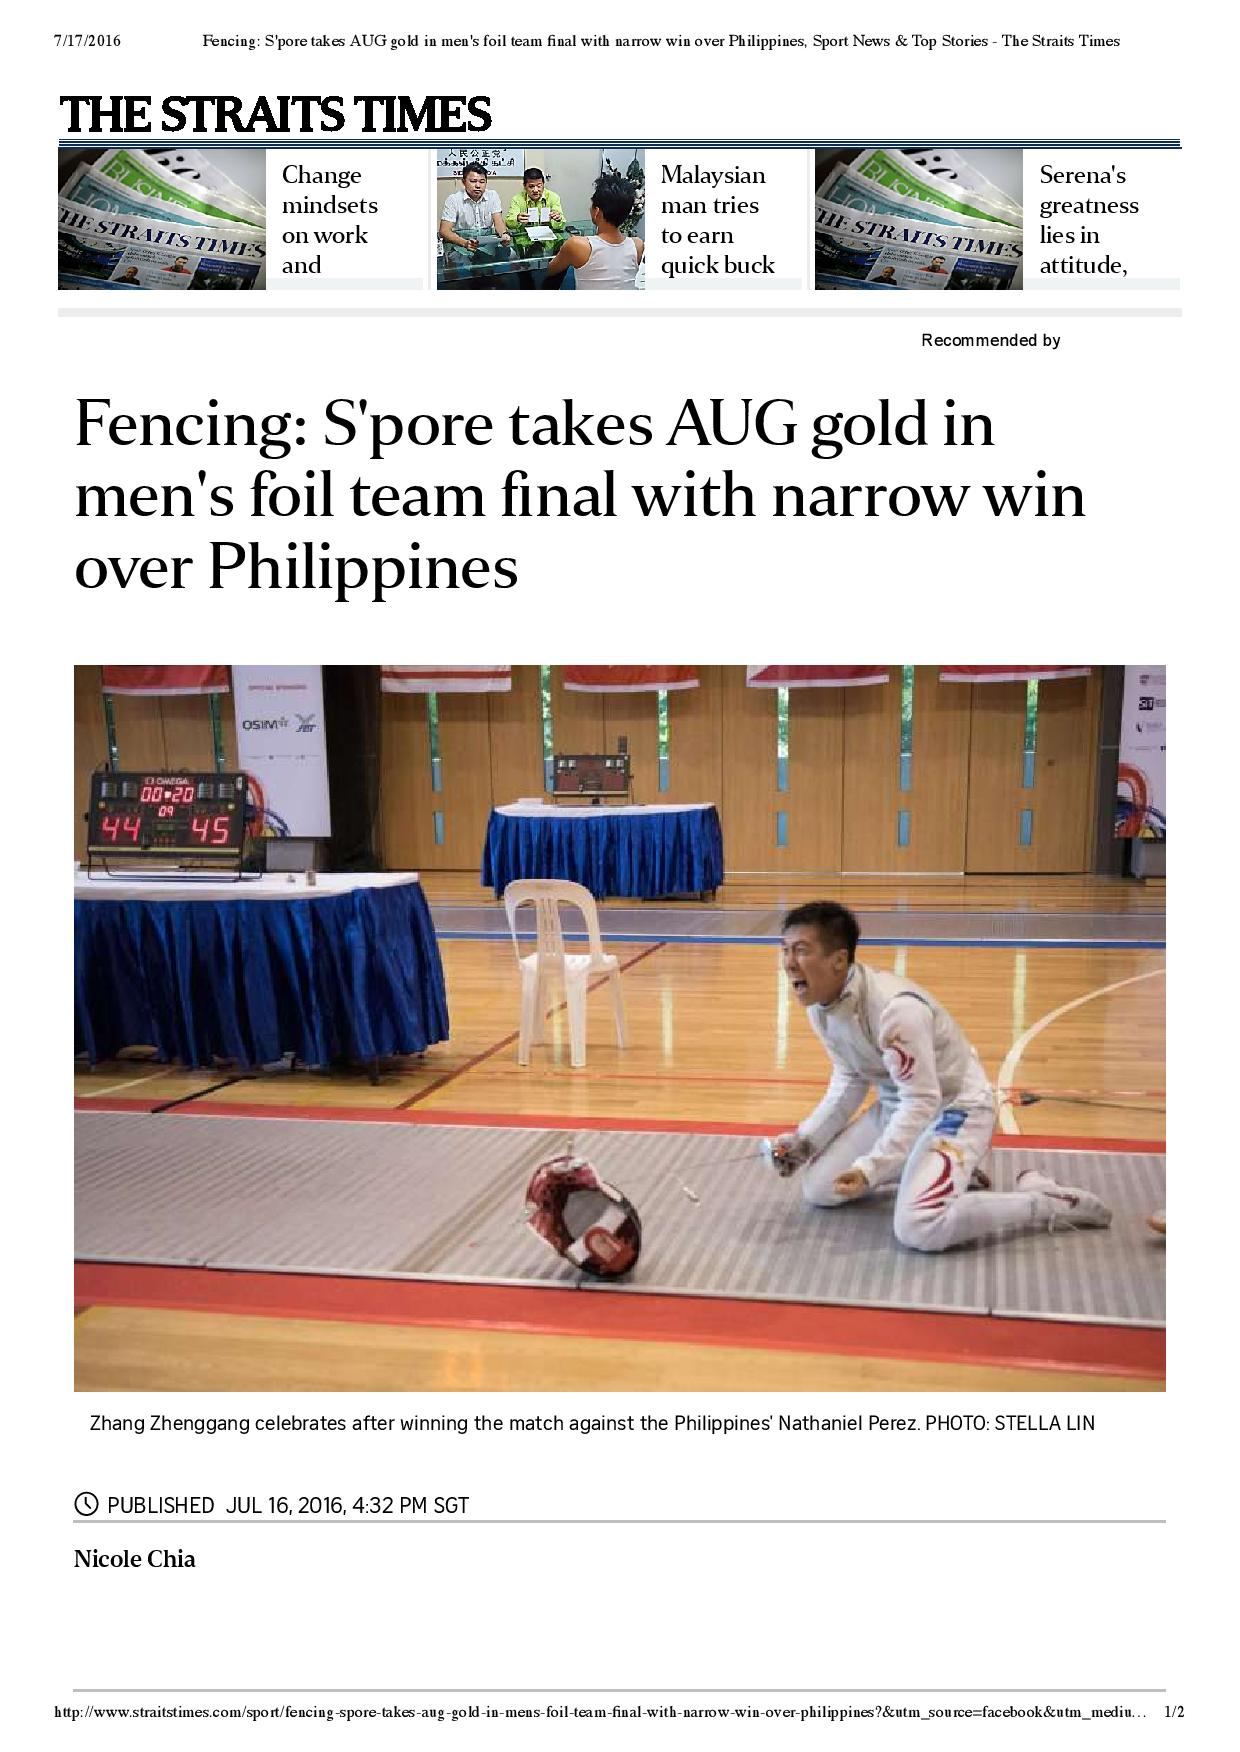 Fencing_ S pore takes AUG gold in men s foil team final with narrow win over Philippines, Sport News & Top Stories - The Straits Times-page-001